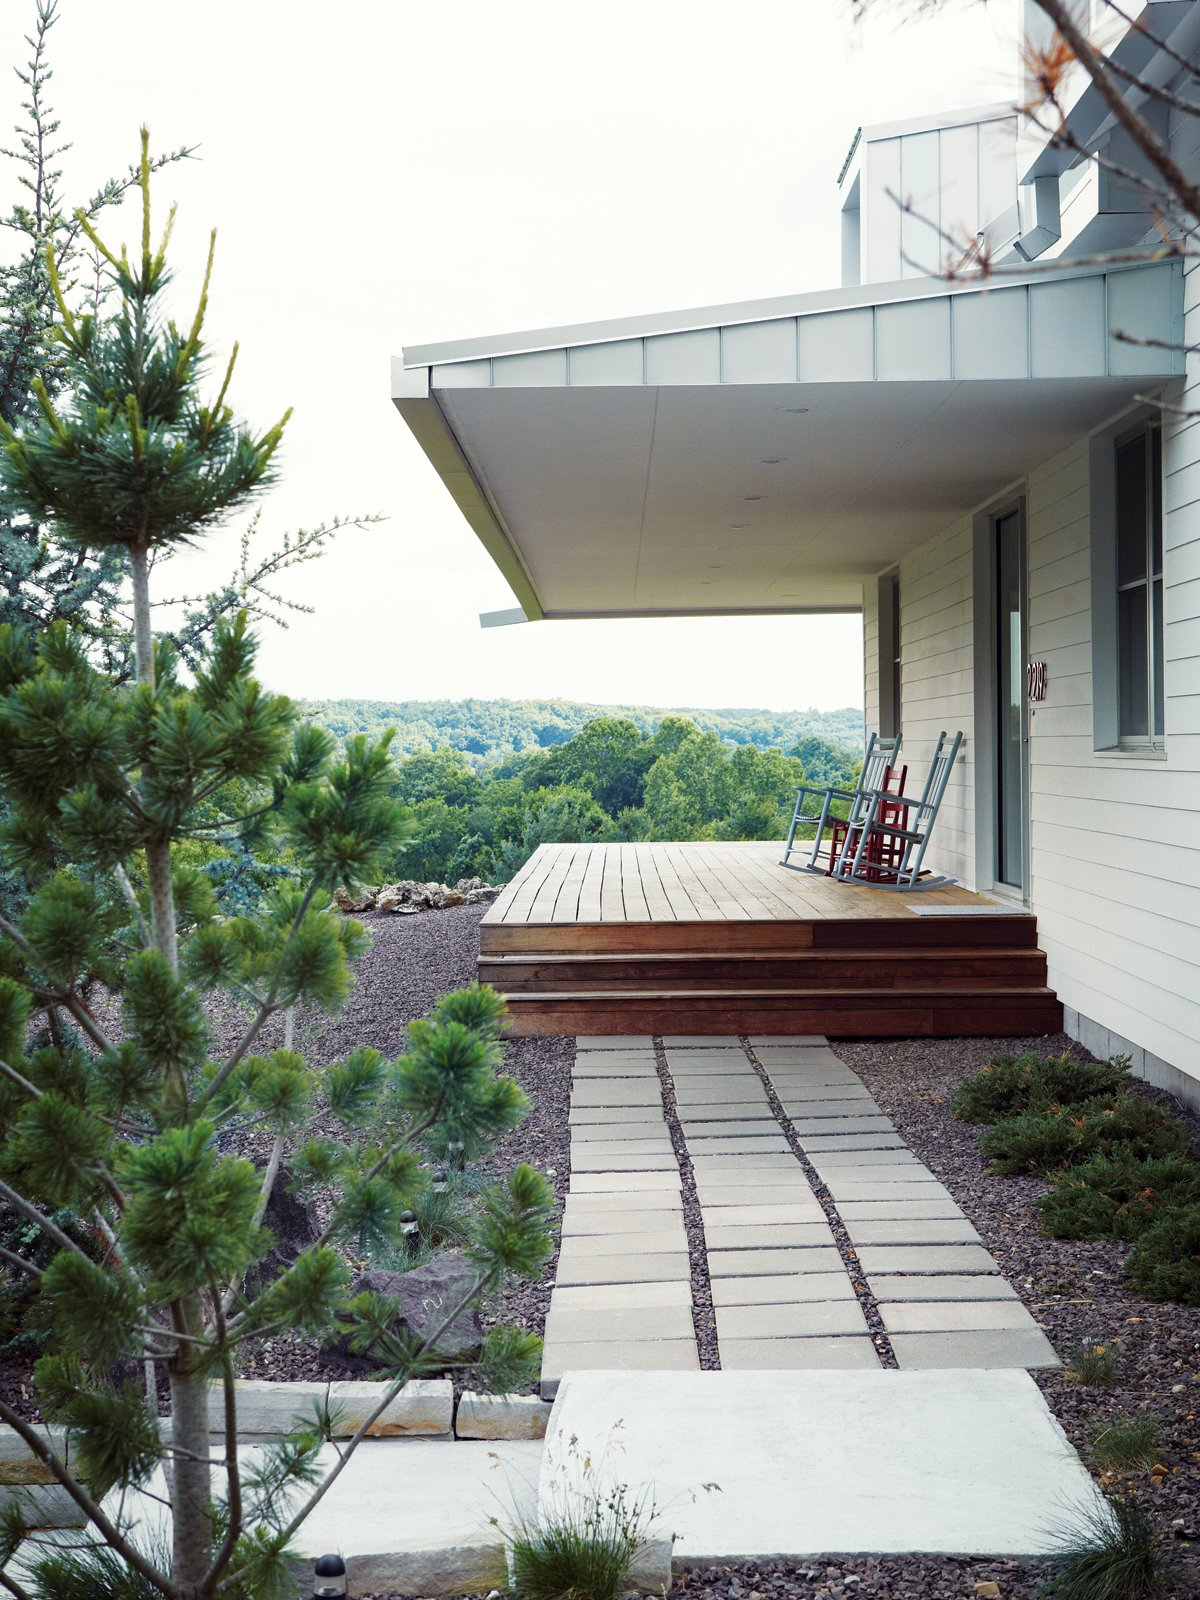 Outdoor, Pavers, Wood, Walkways, Trees, and Hardscapes MODERN TAKE ON A TRADITIONAL FARMHOUSE IN MISSOURI  Thanks to Matthew Hufft, their envelope-pushing architect and longtime friend, Hannah and Paul Catlett have a new home in southwestern Missouri that's a fresh, unconventional take on the traditional farmhouse. The homeowners call the house Porch House after it's majestic wraparound porch.  photos by: Joe Pugliese  Best Outdoor Pavers Wood Photos from Ozark Original